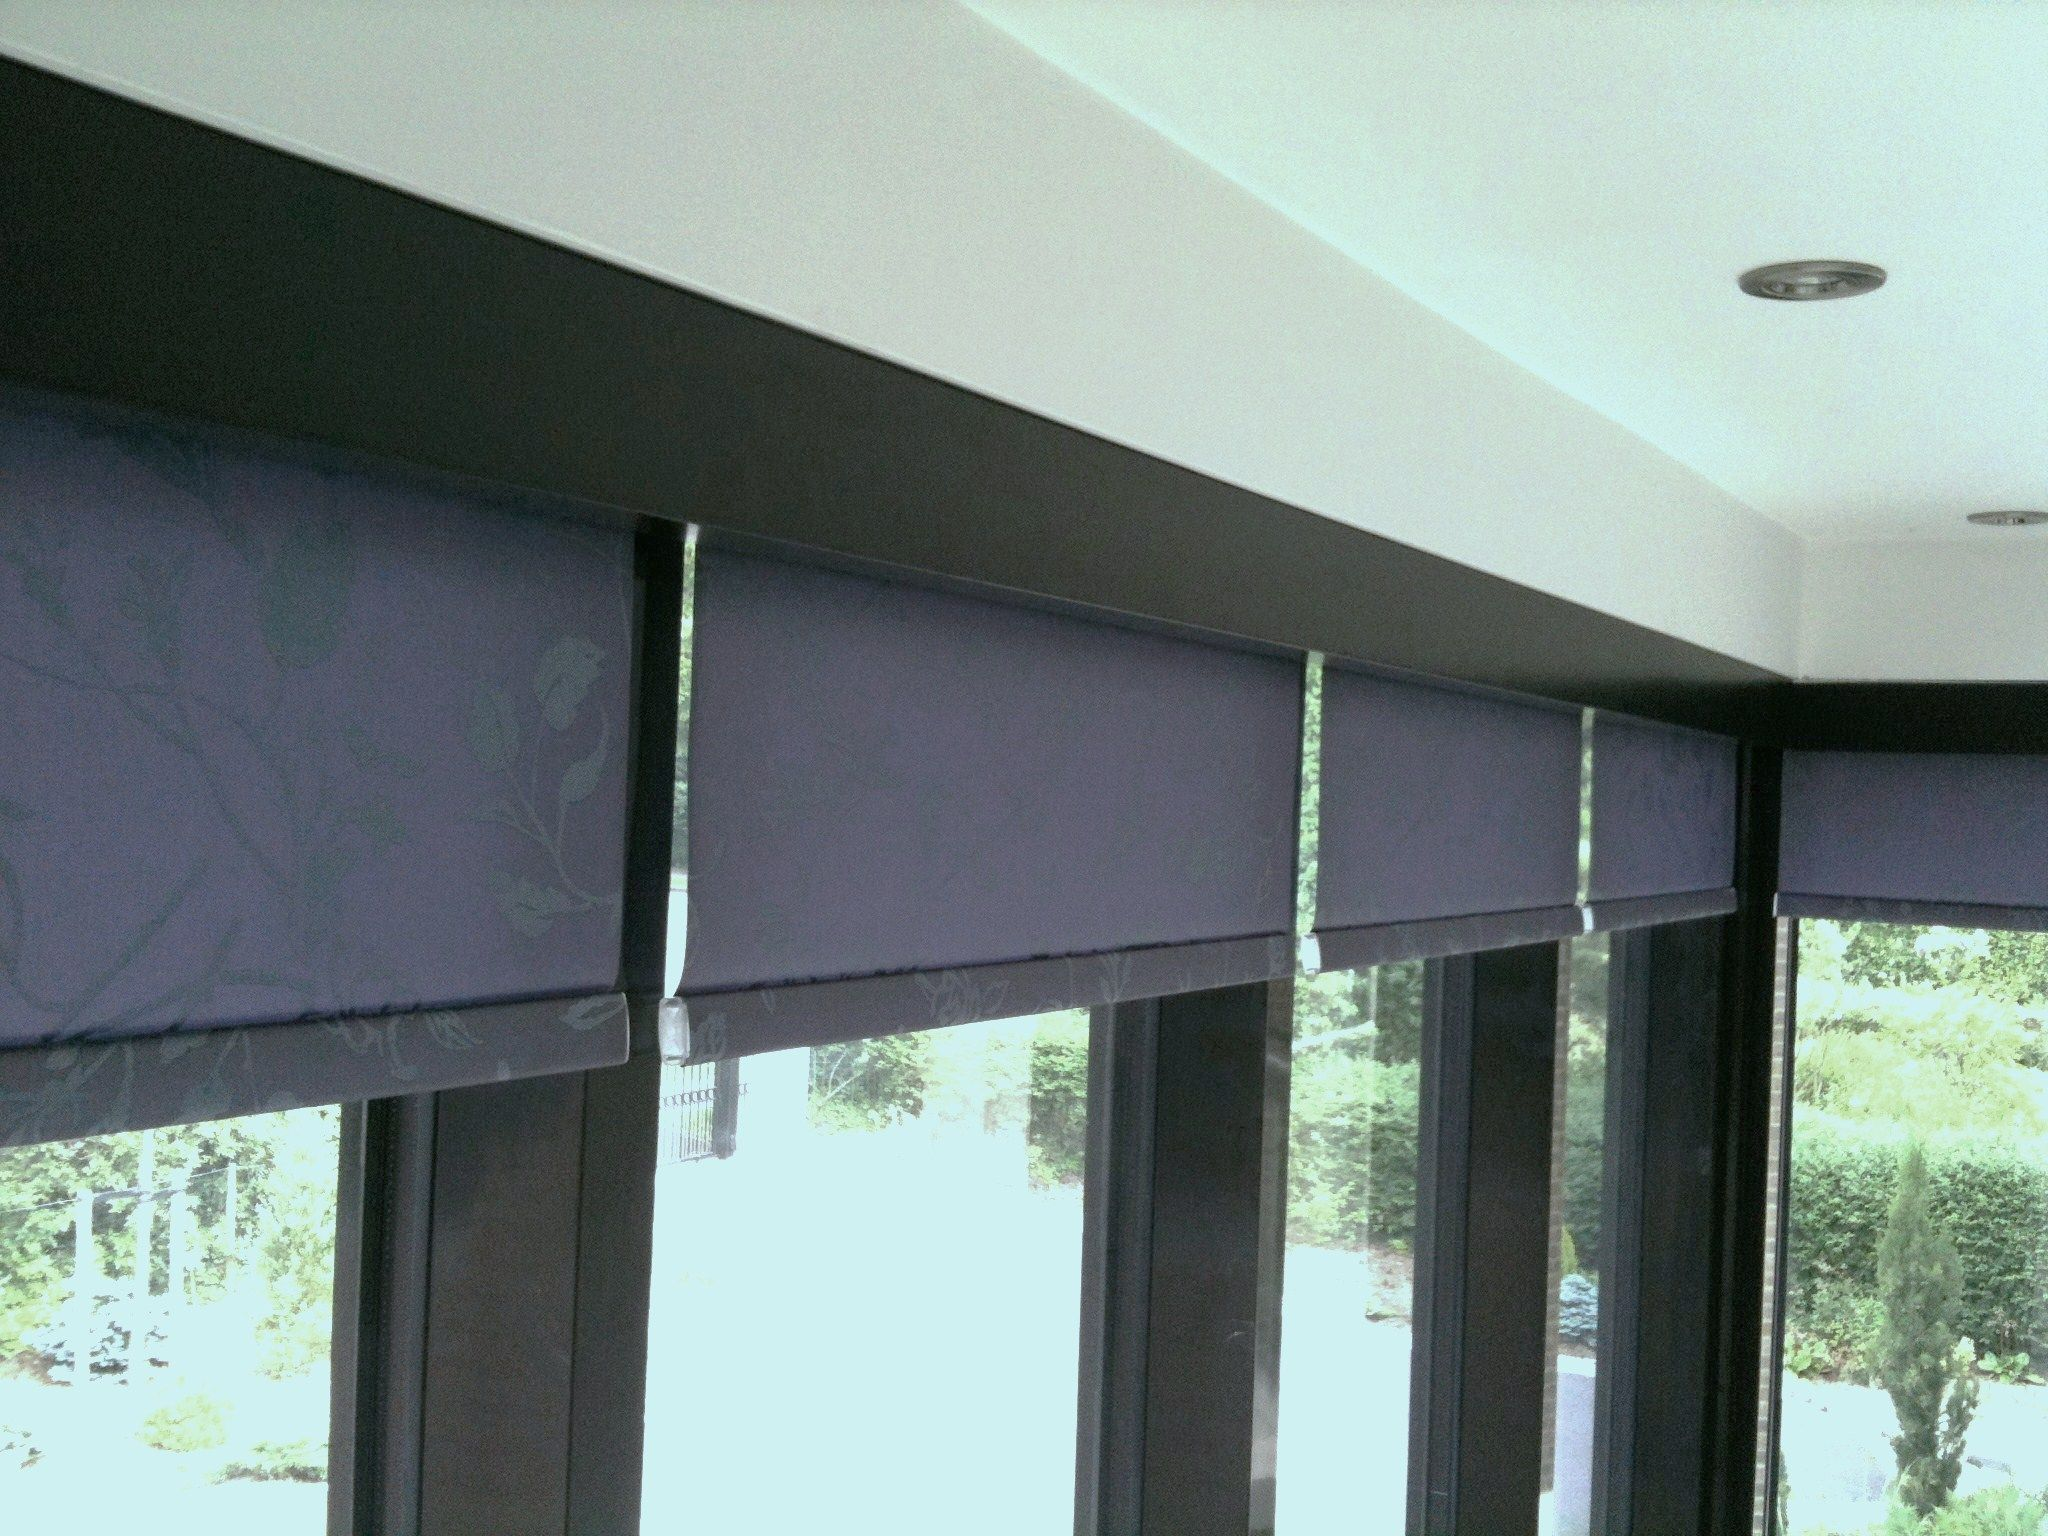 Office Blinds | ... To Hide The Roller Blinds And To Match The Black Window  Frames